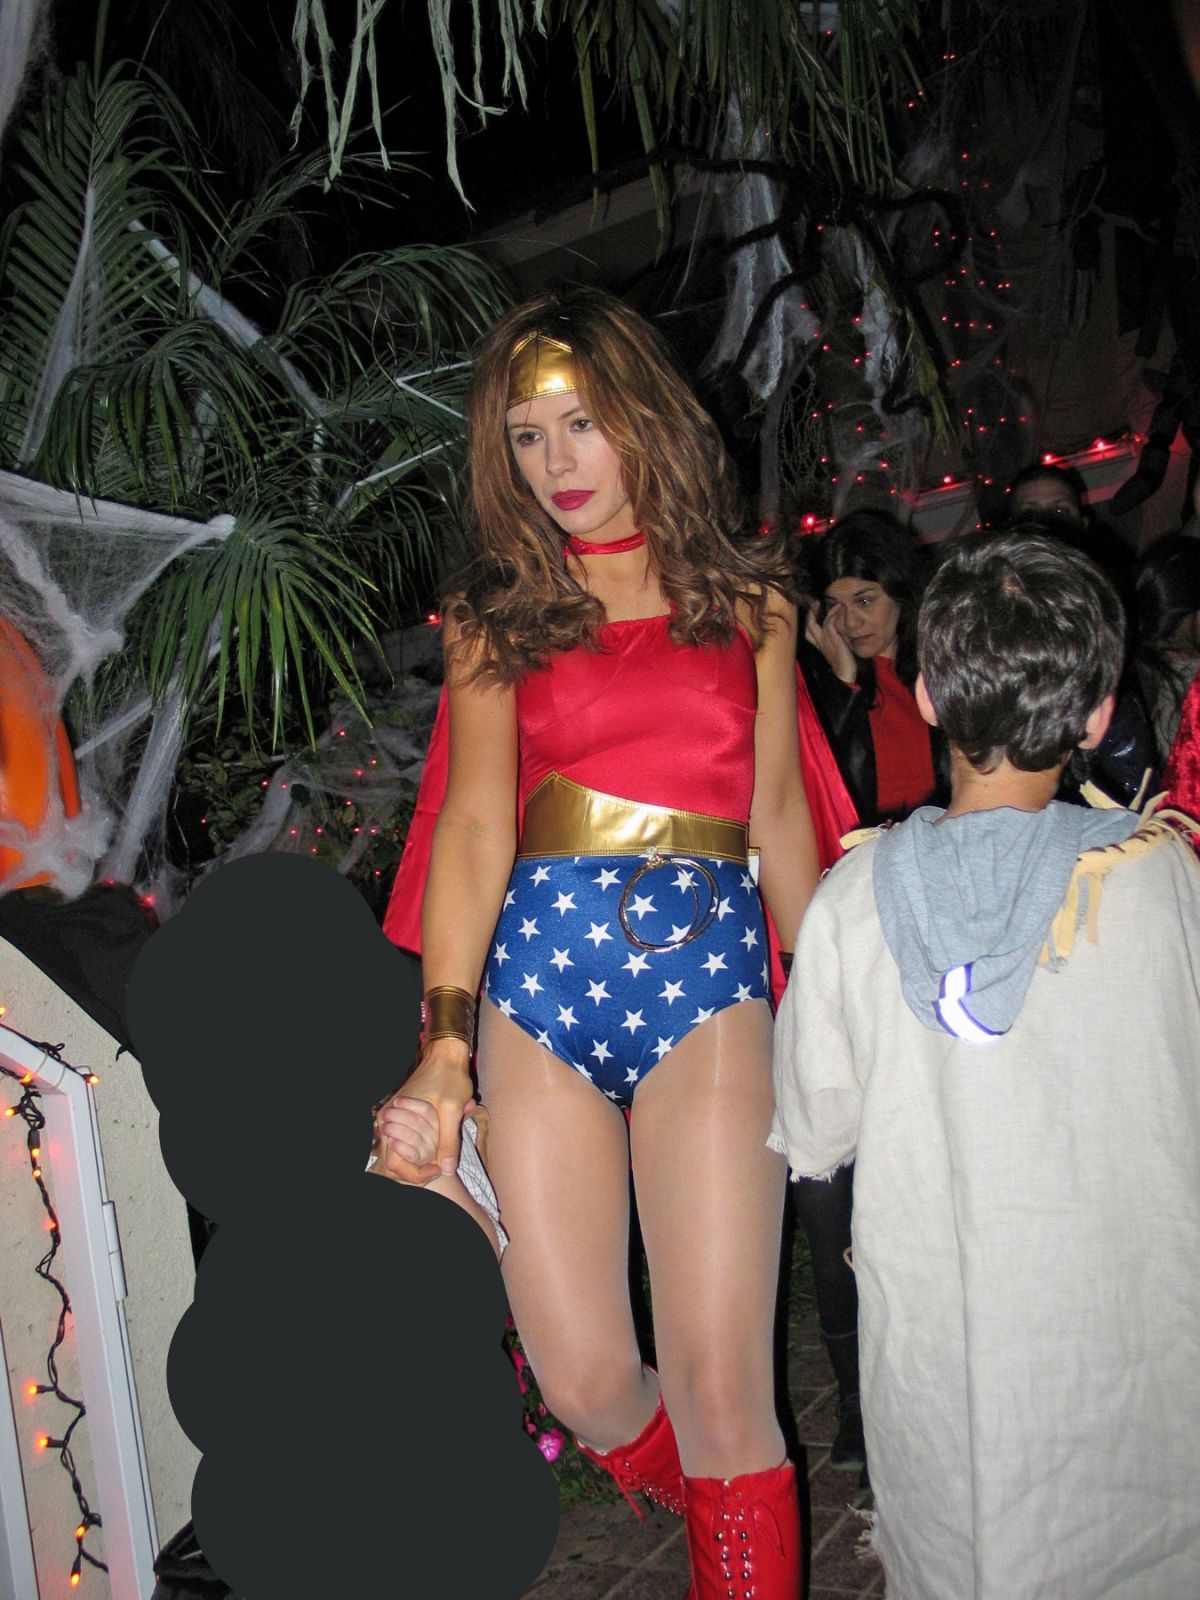 kate beckinsale as wonder woman at halloween 2004 - celebzz